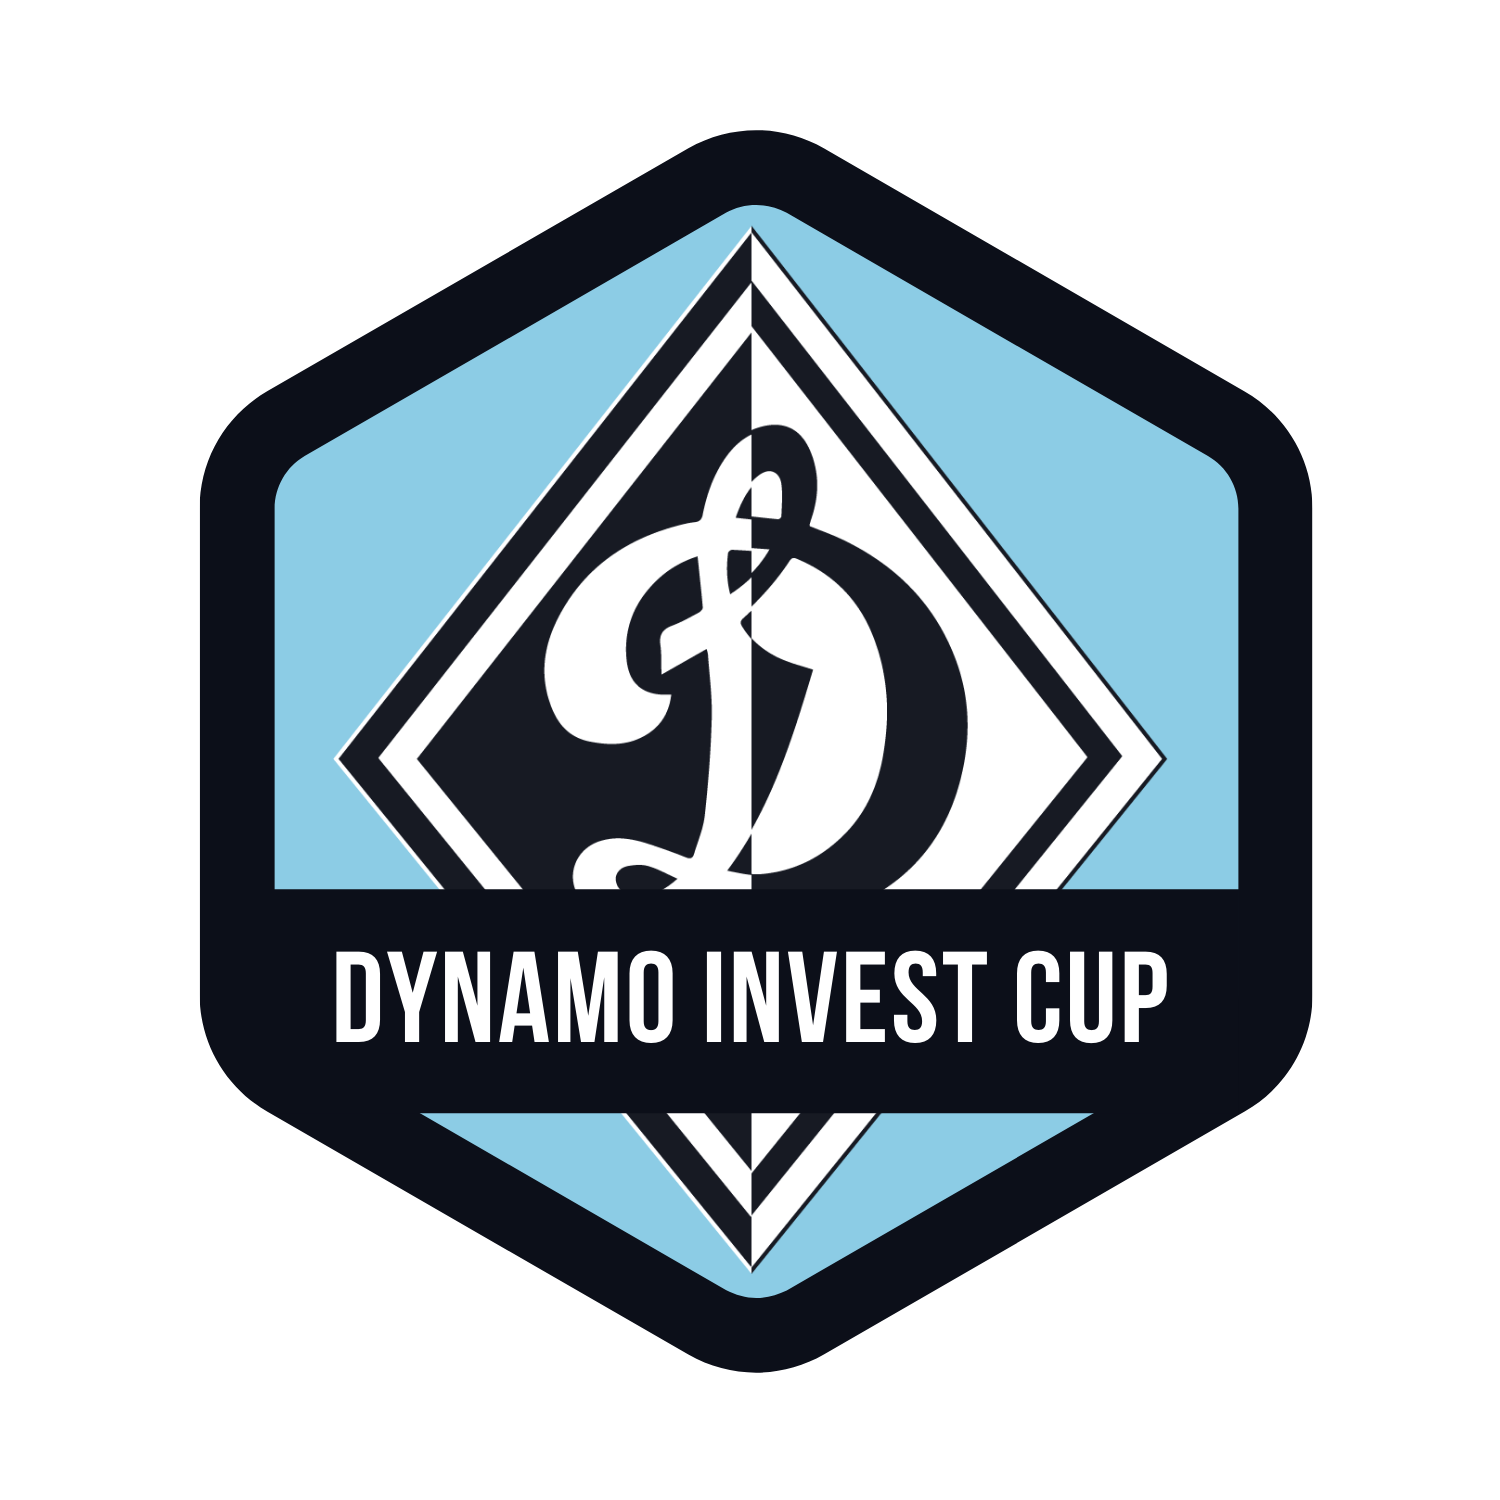 DYNAMO INVEST CUP